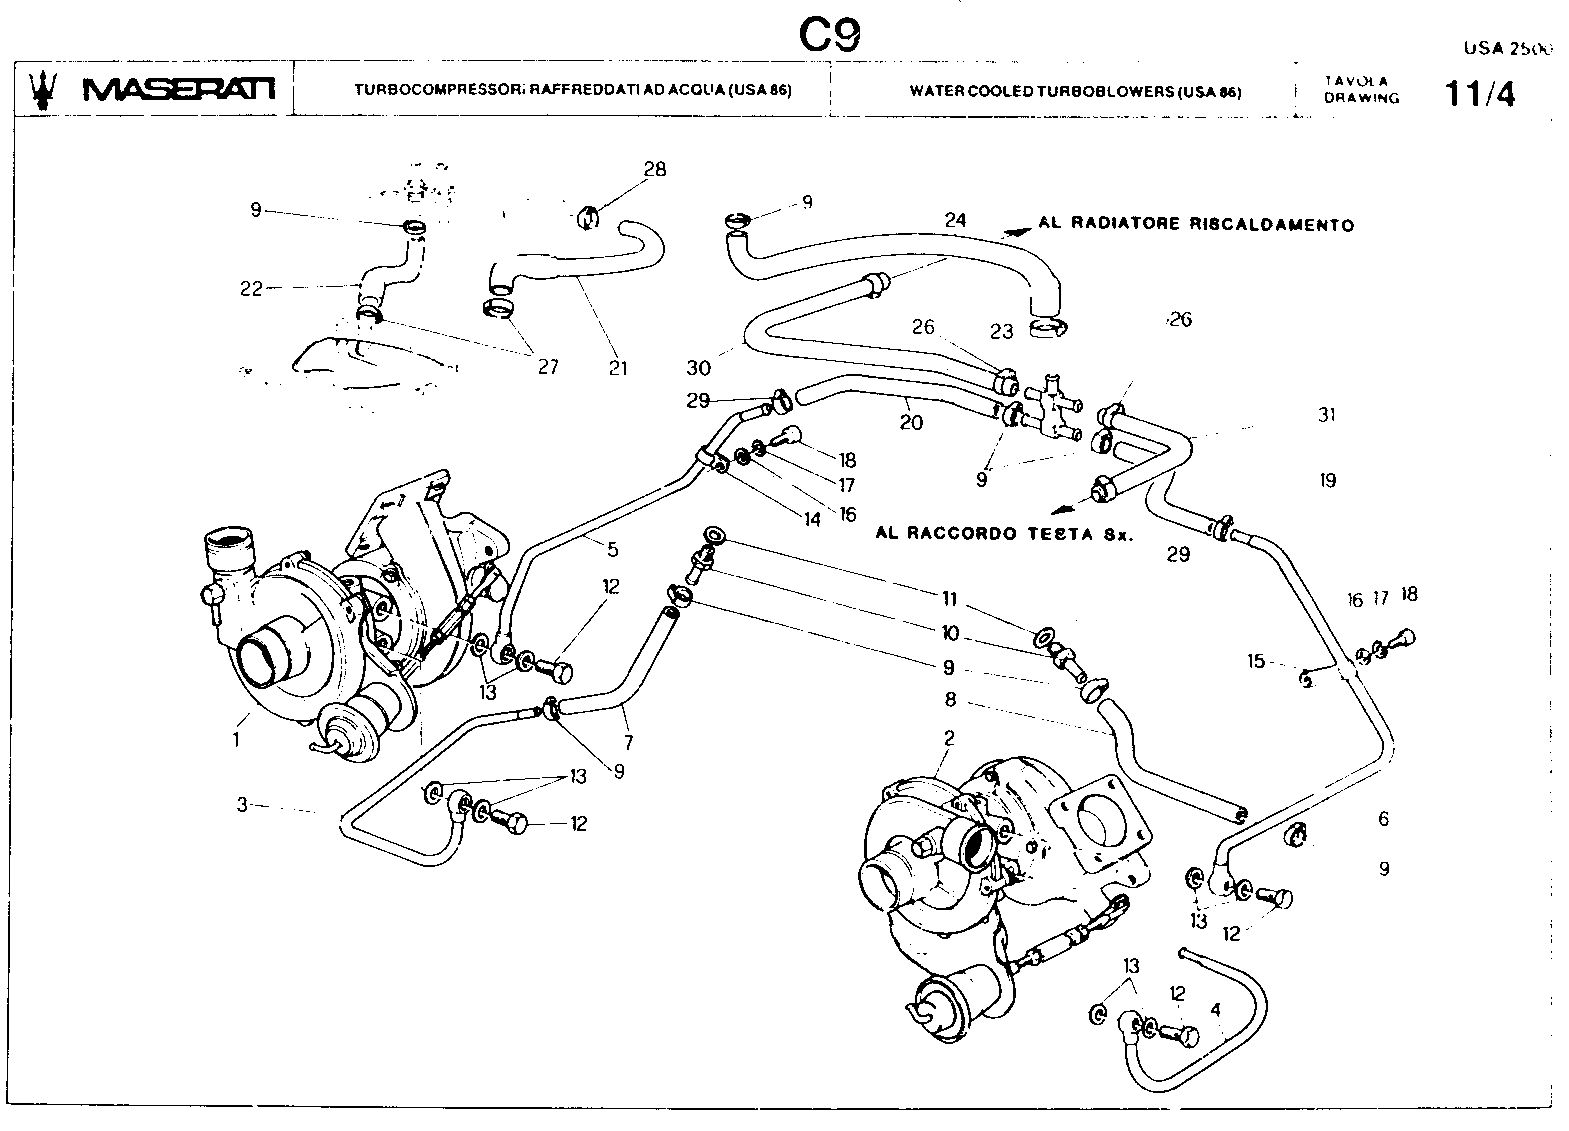 Gm Hei Tach Wiring - Auto Electrical Wiring Diagram Niles Rca Sm Wiring Diagram on